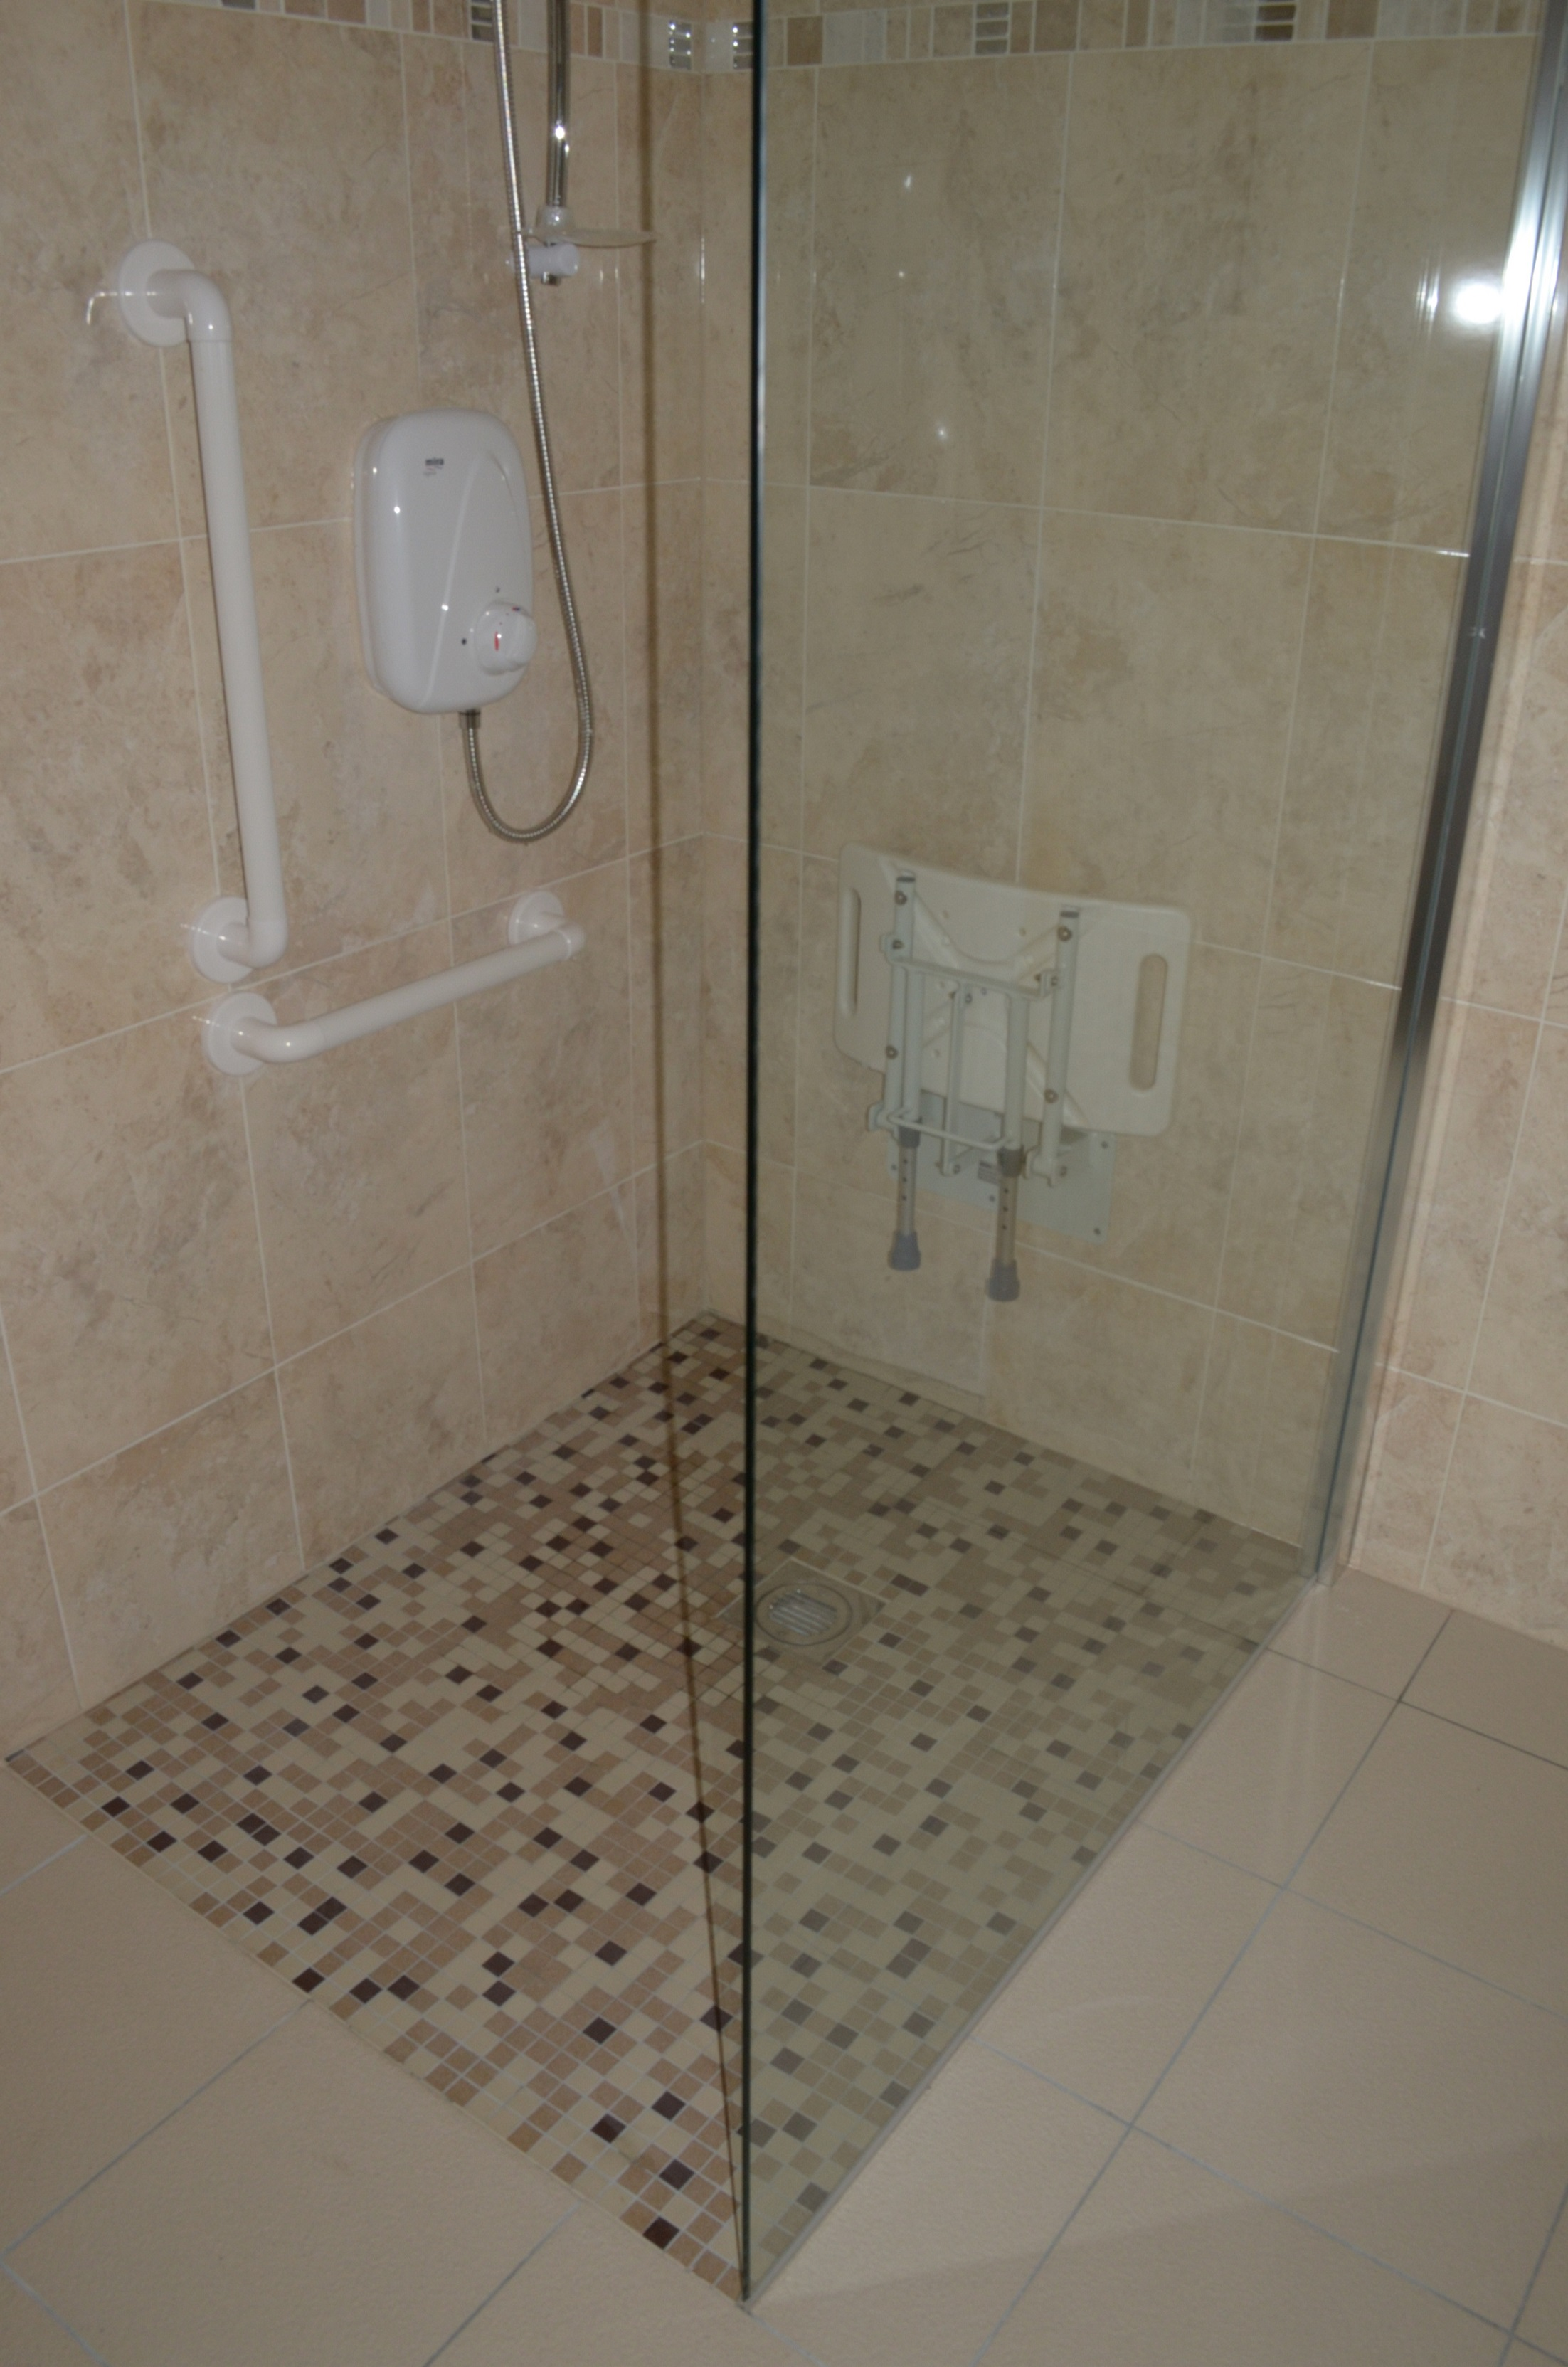 Wetroom Bathroom Renovation O'Connor Carroll Bathrooms & Tiles Dublin